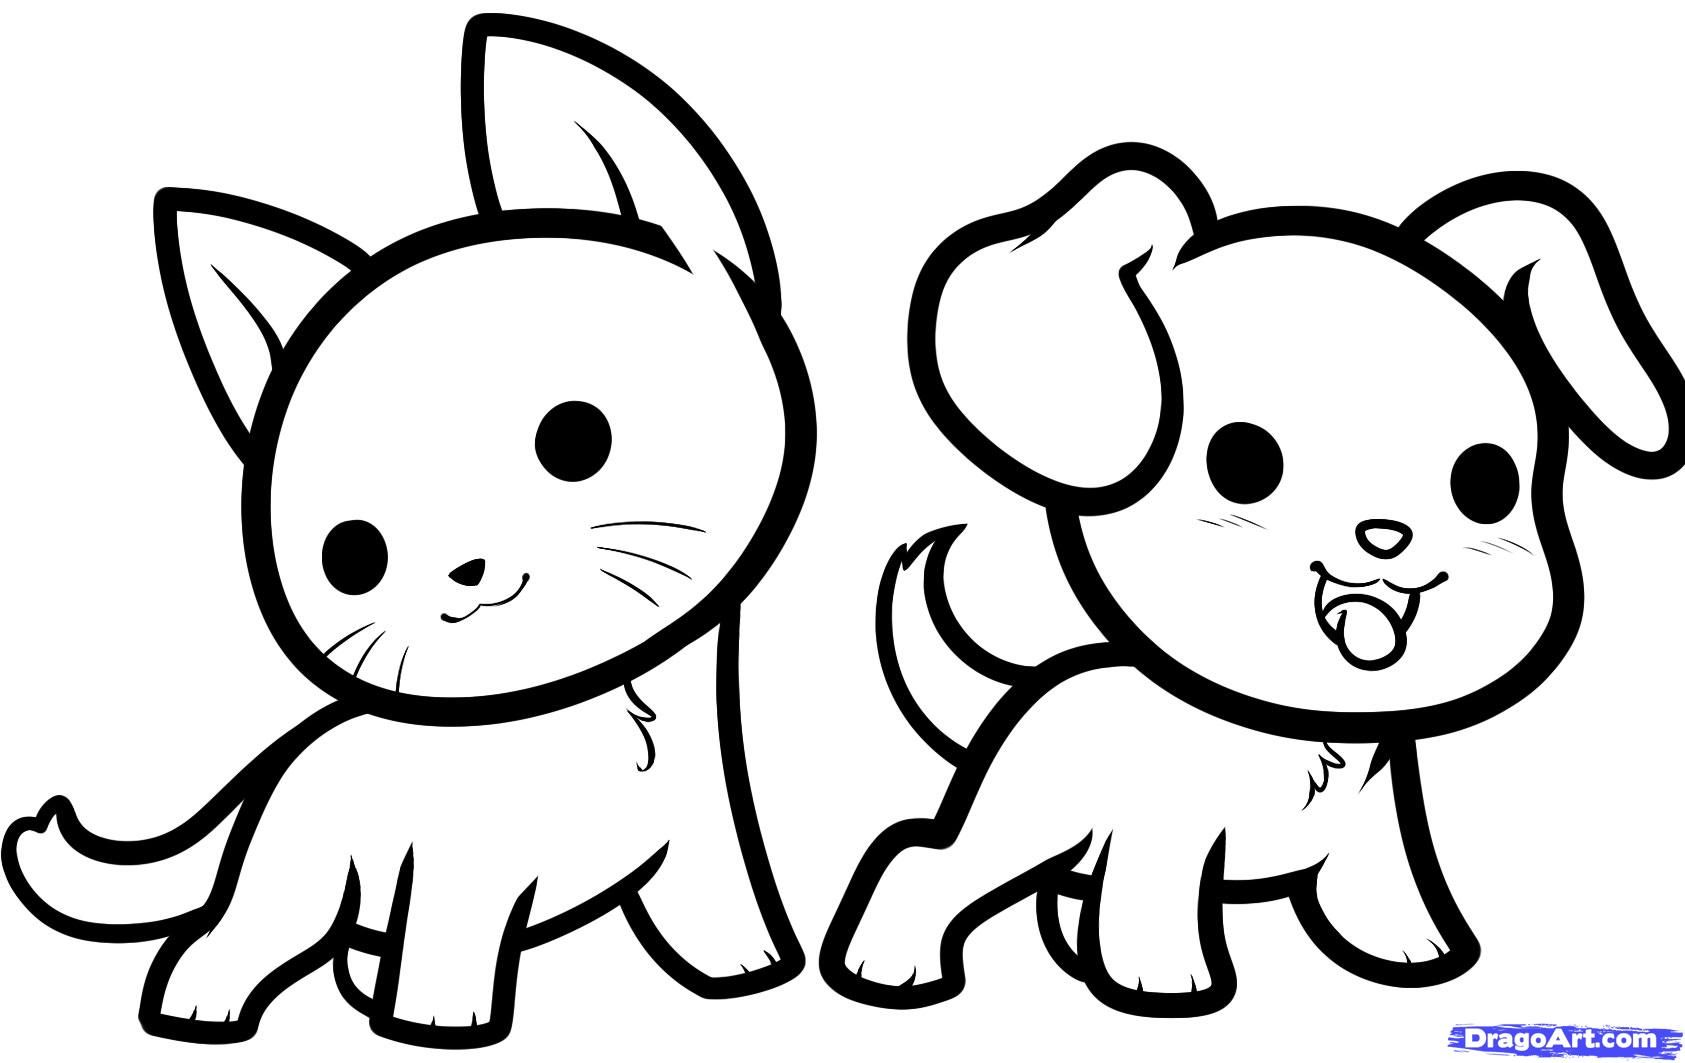 How To Draw Kawaii Animals Step By Step Anime Animals Anime